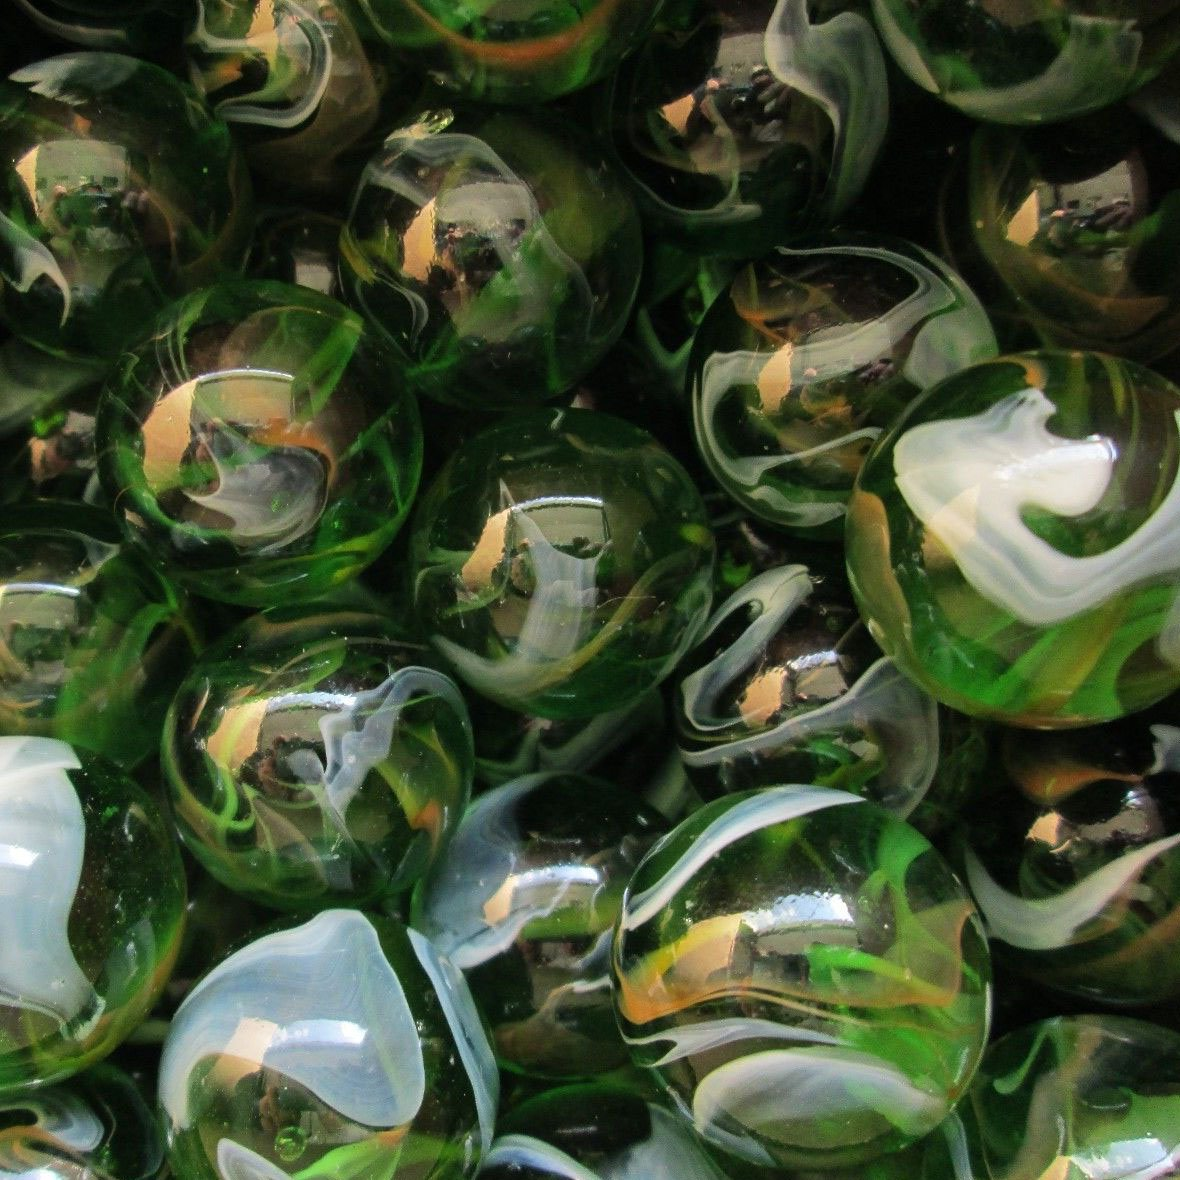 """Unique & Custom {1'' Inch} Set of Approx 50 Big """"Round"""" Clear Marbles Made of Glass for Filling Vases, Games & Decor w/ Shiny Forest Emerald Tone Nature Swirl Design [Green, Yellow & White Color]"""